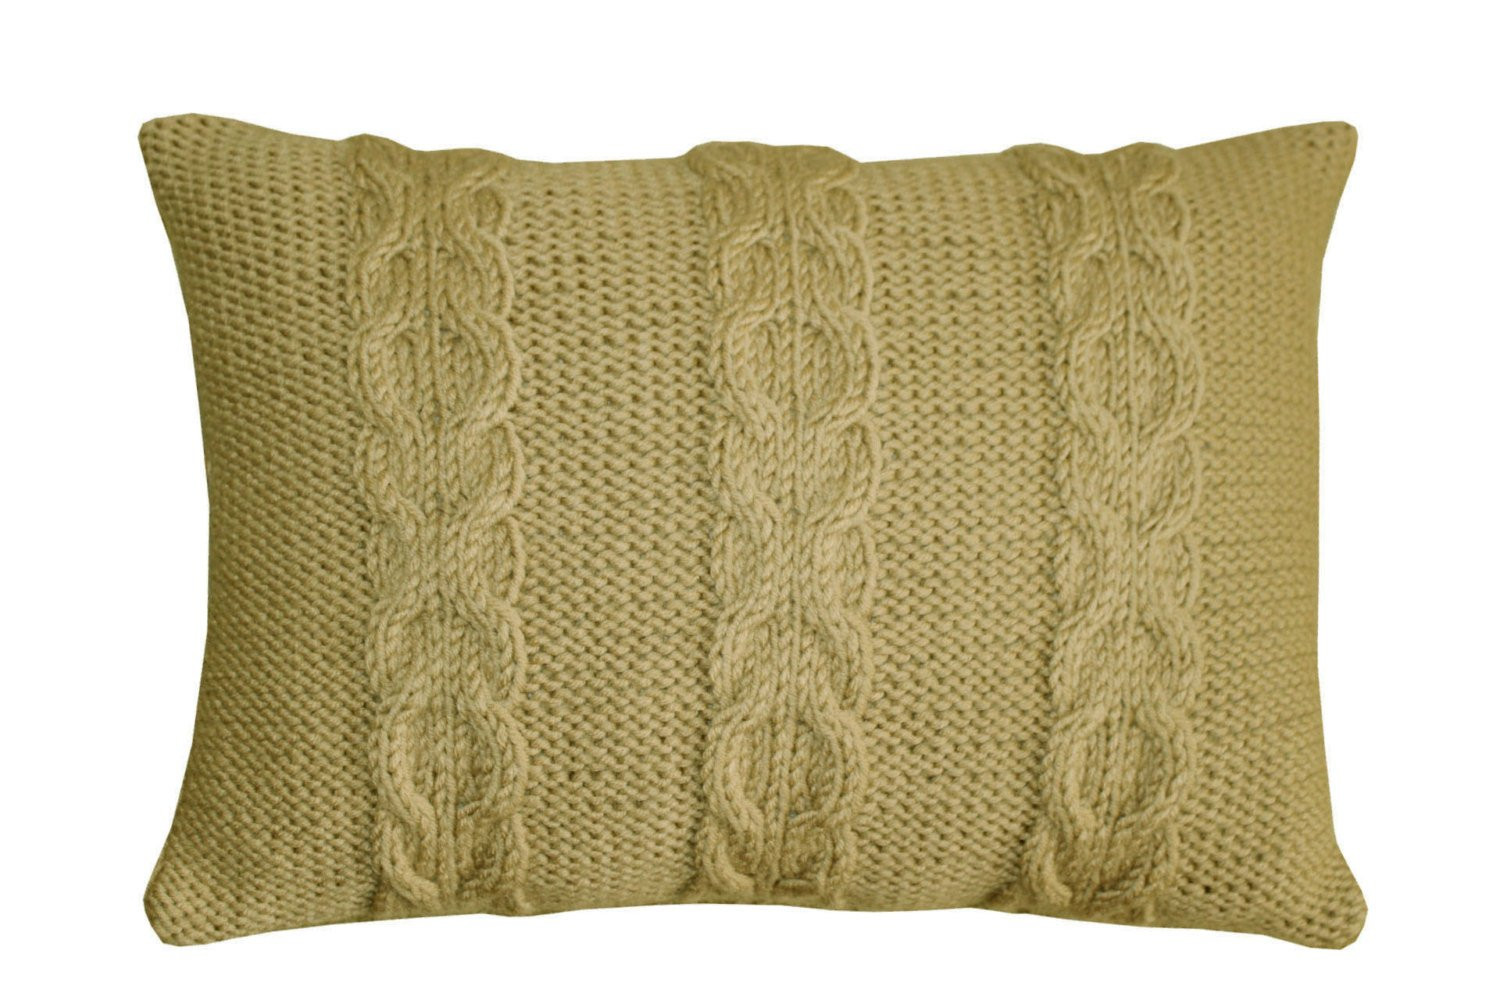 Luxury Decorative Cable Knit Pillow In Beige Decorative Pillow Hand Cable Knit Throw Pillow Of Great 48 Ideas Cable Knit Throw Pillow